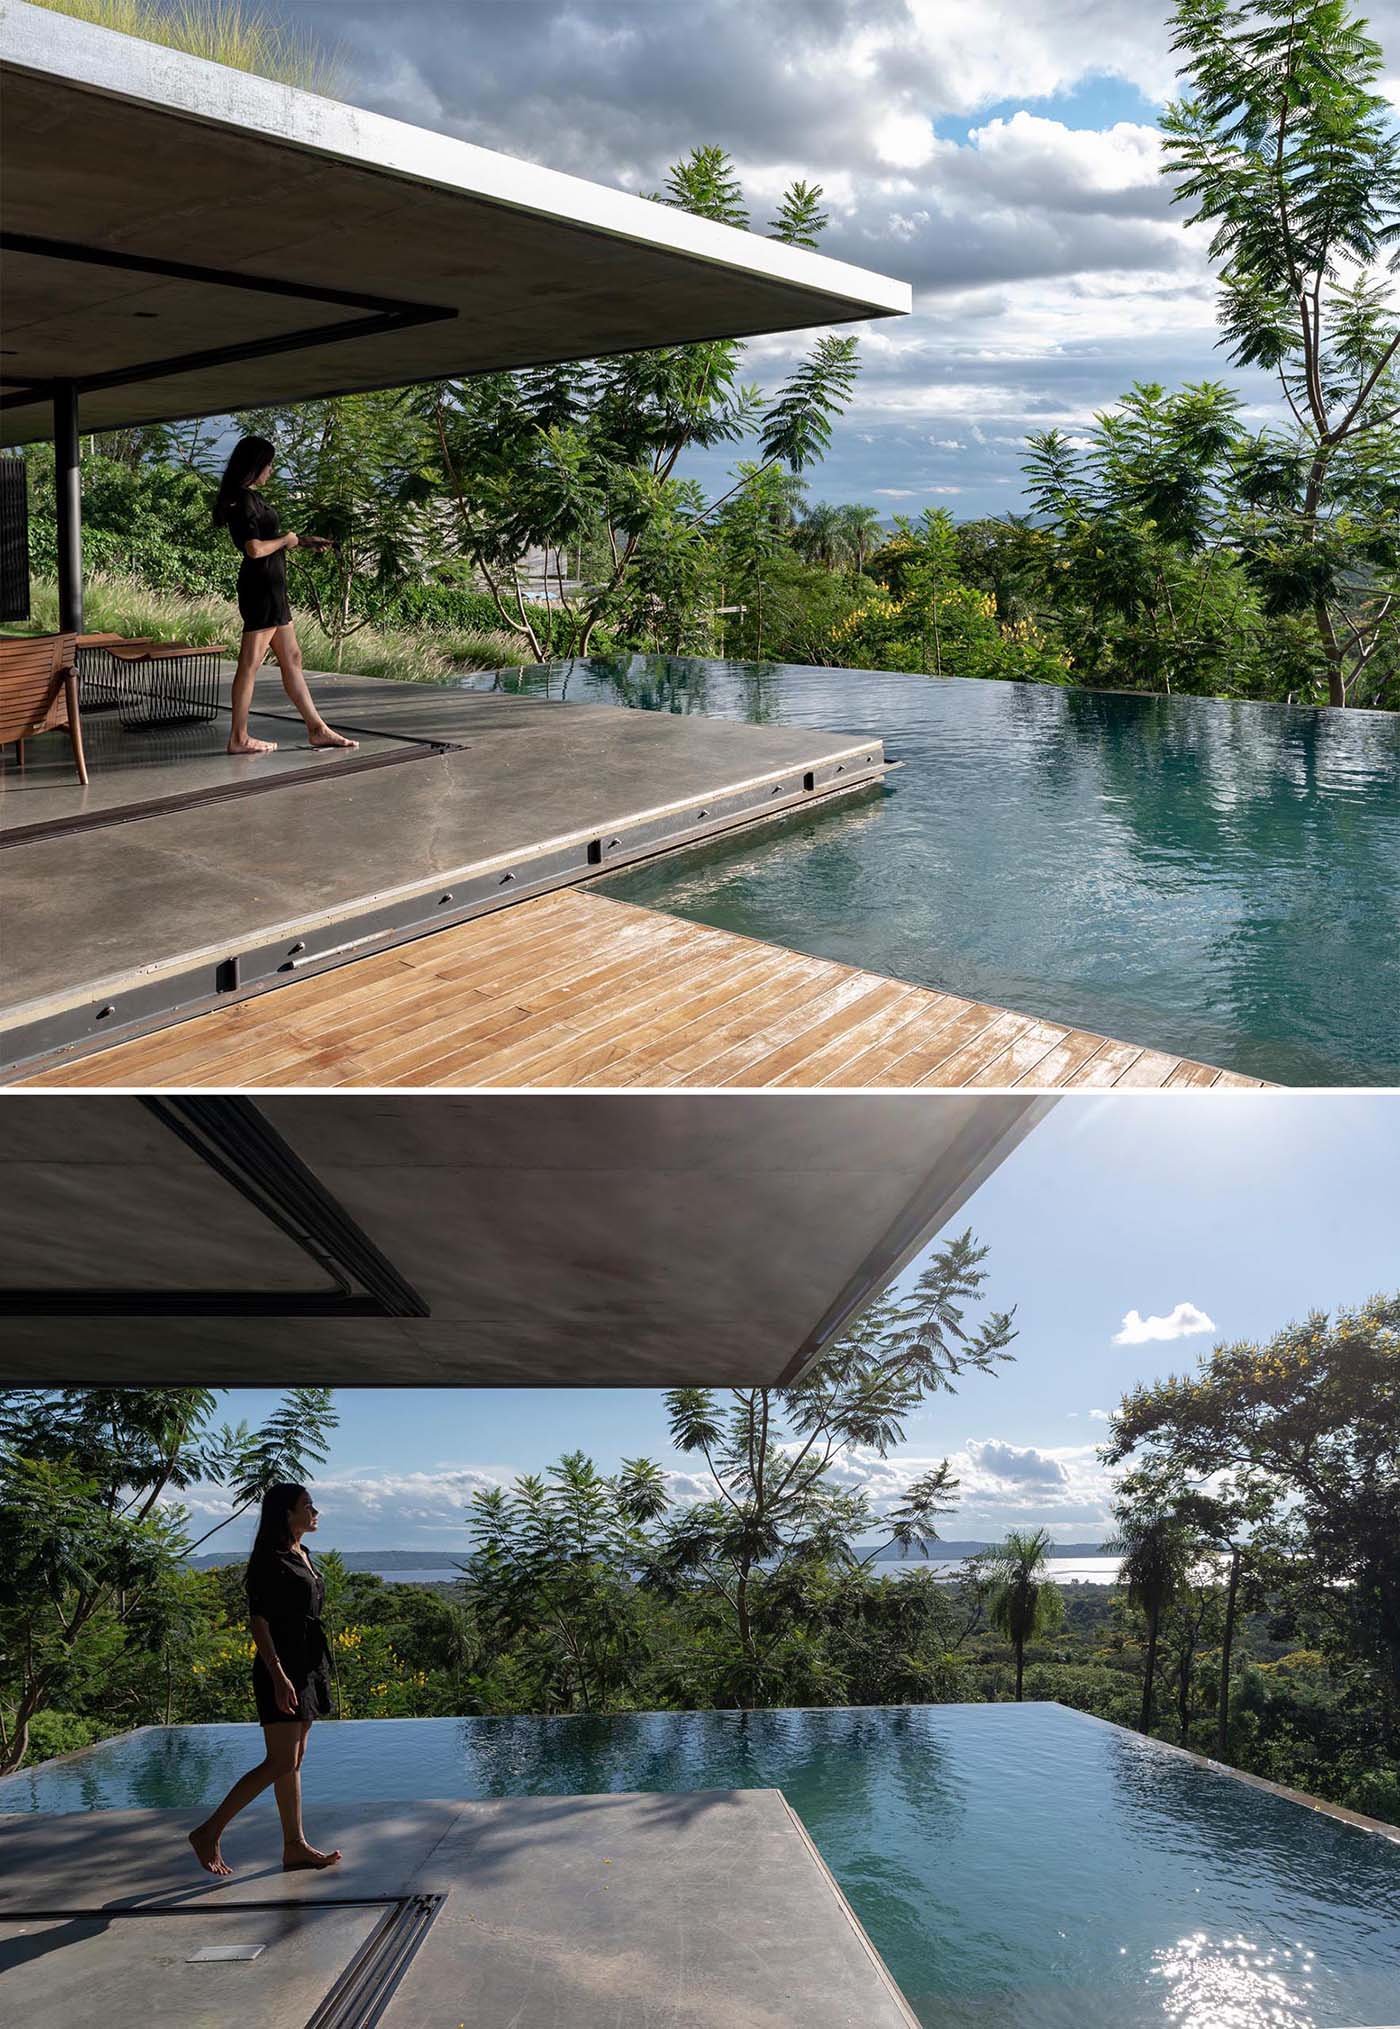 A modern house that has an infinity edge swimming pool that wraps around the corner.